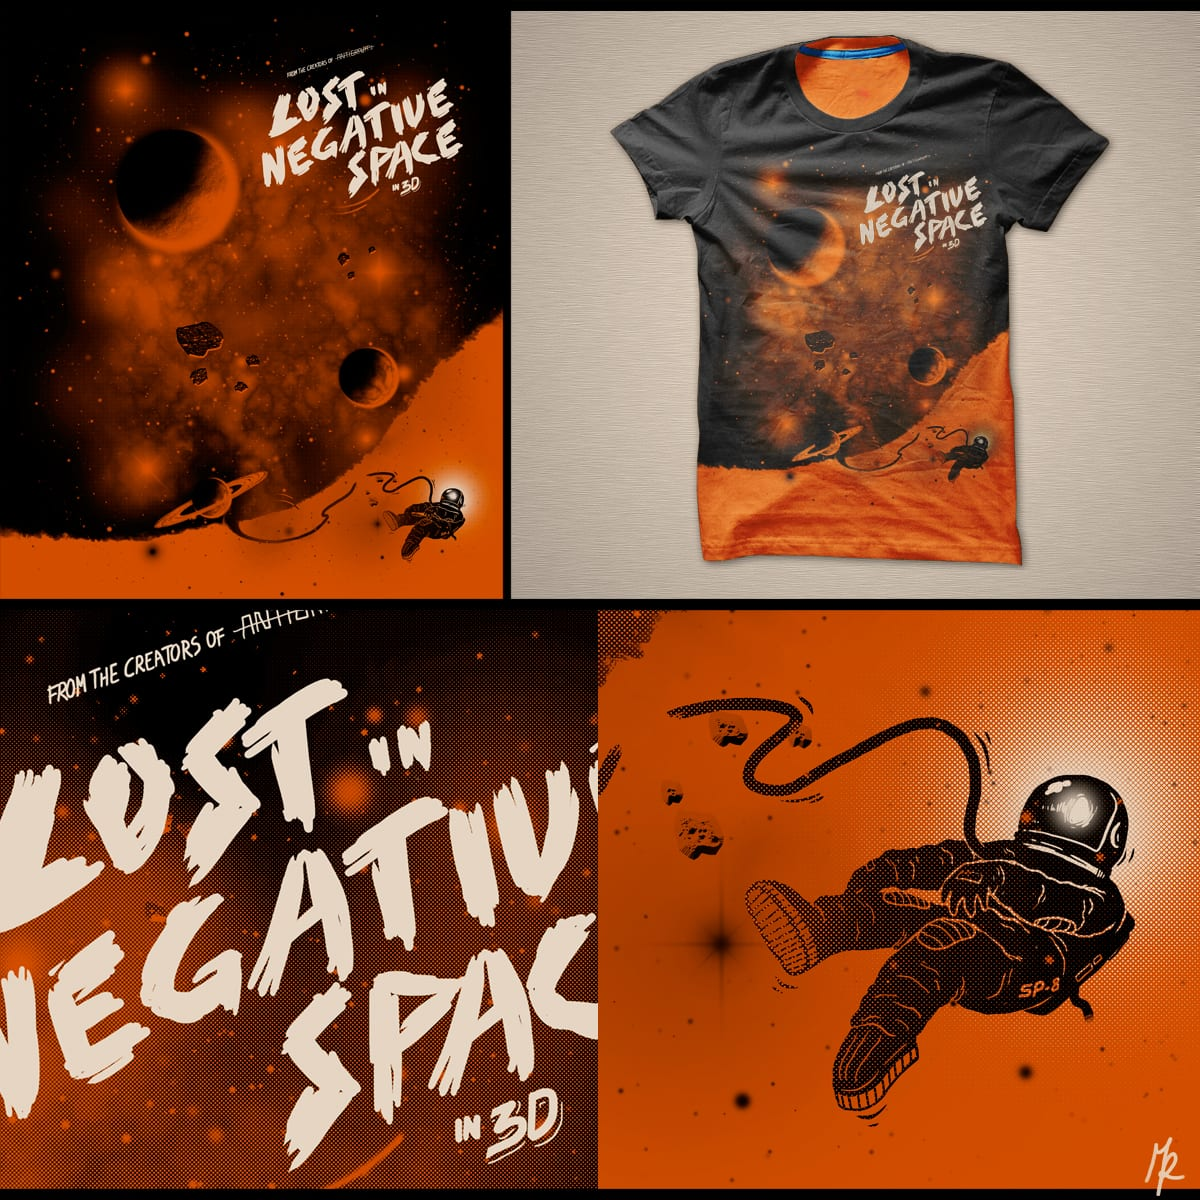 Lost in negative space by micheleficeli on Threadless